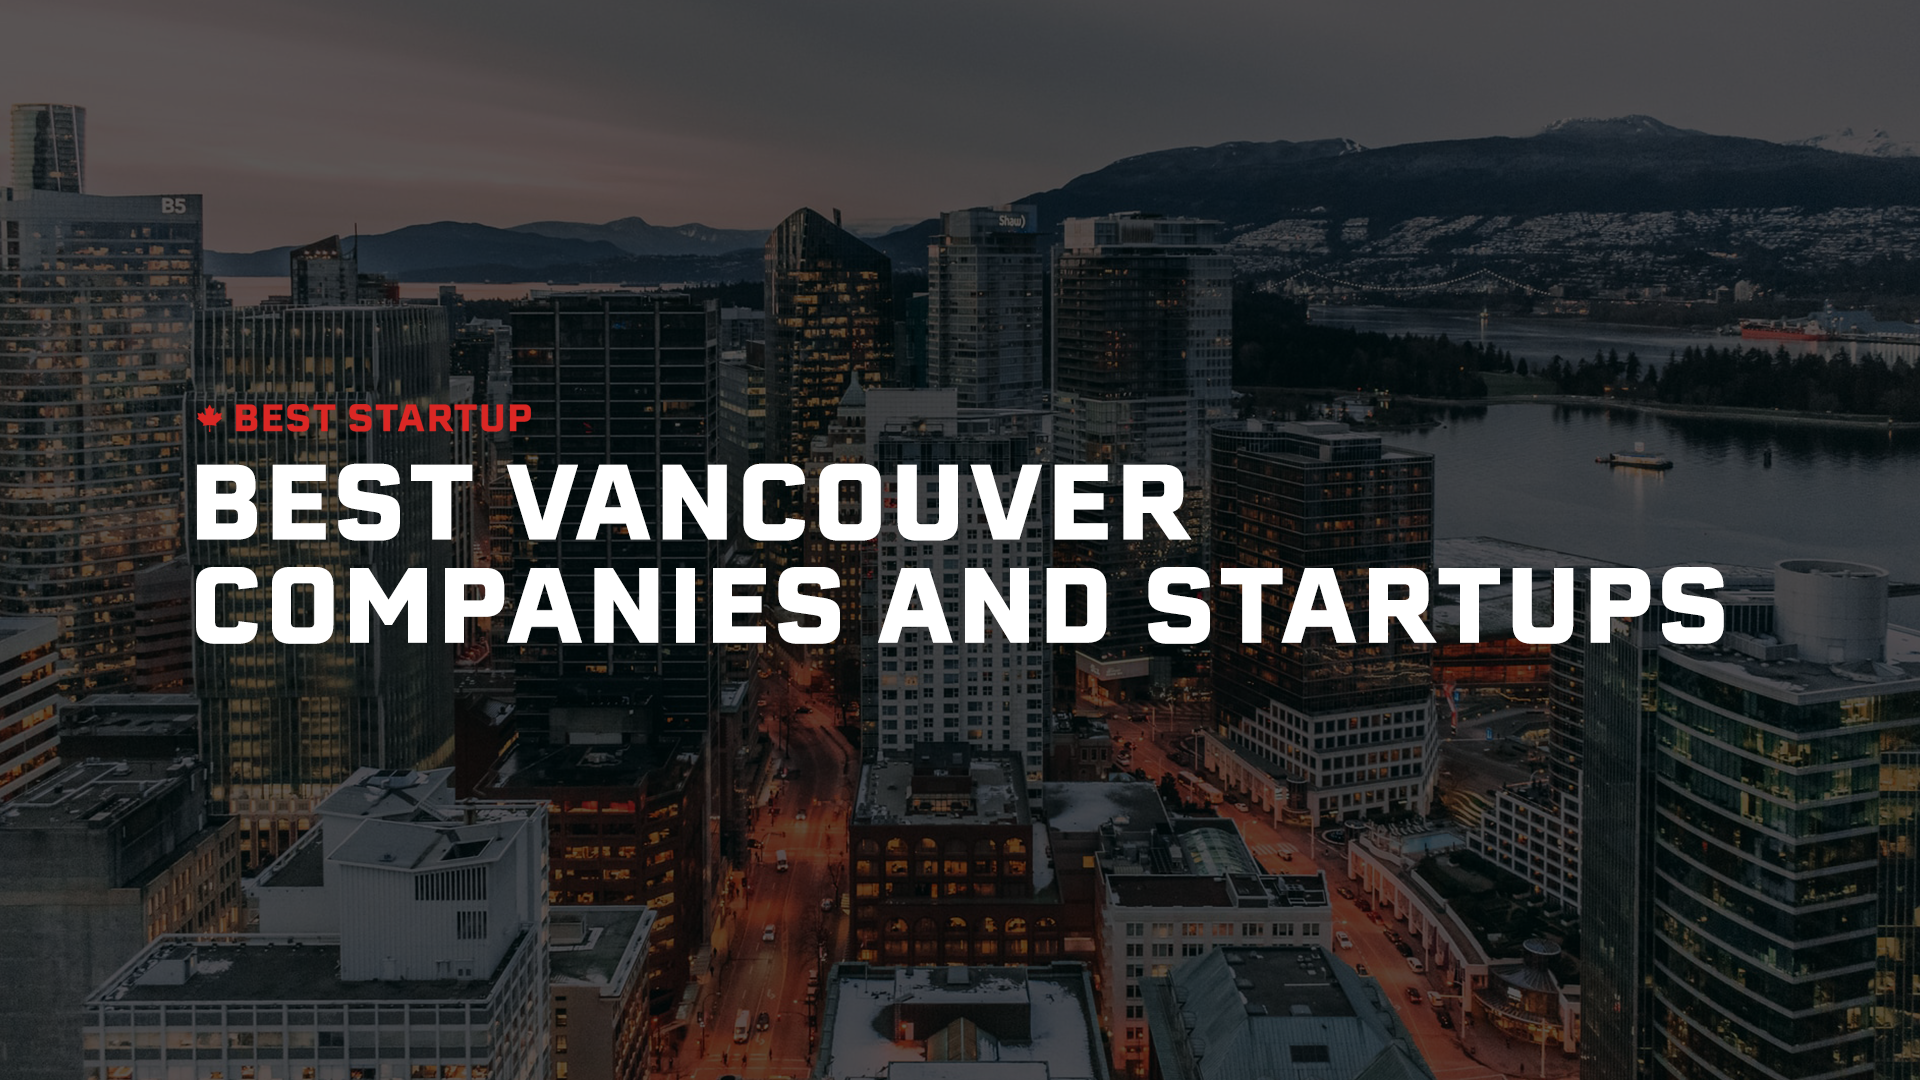 101 Top Social Media Startups and Companies in Vancouver (2021)